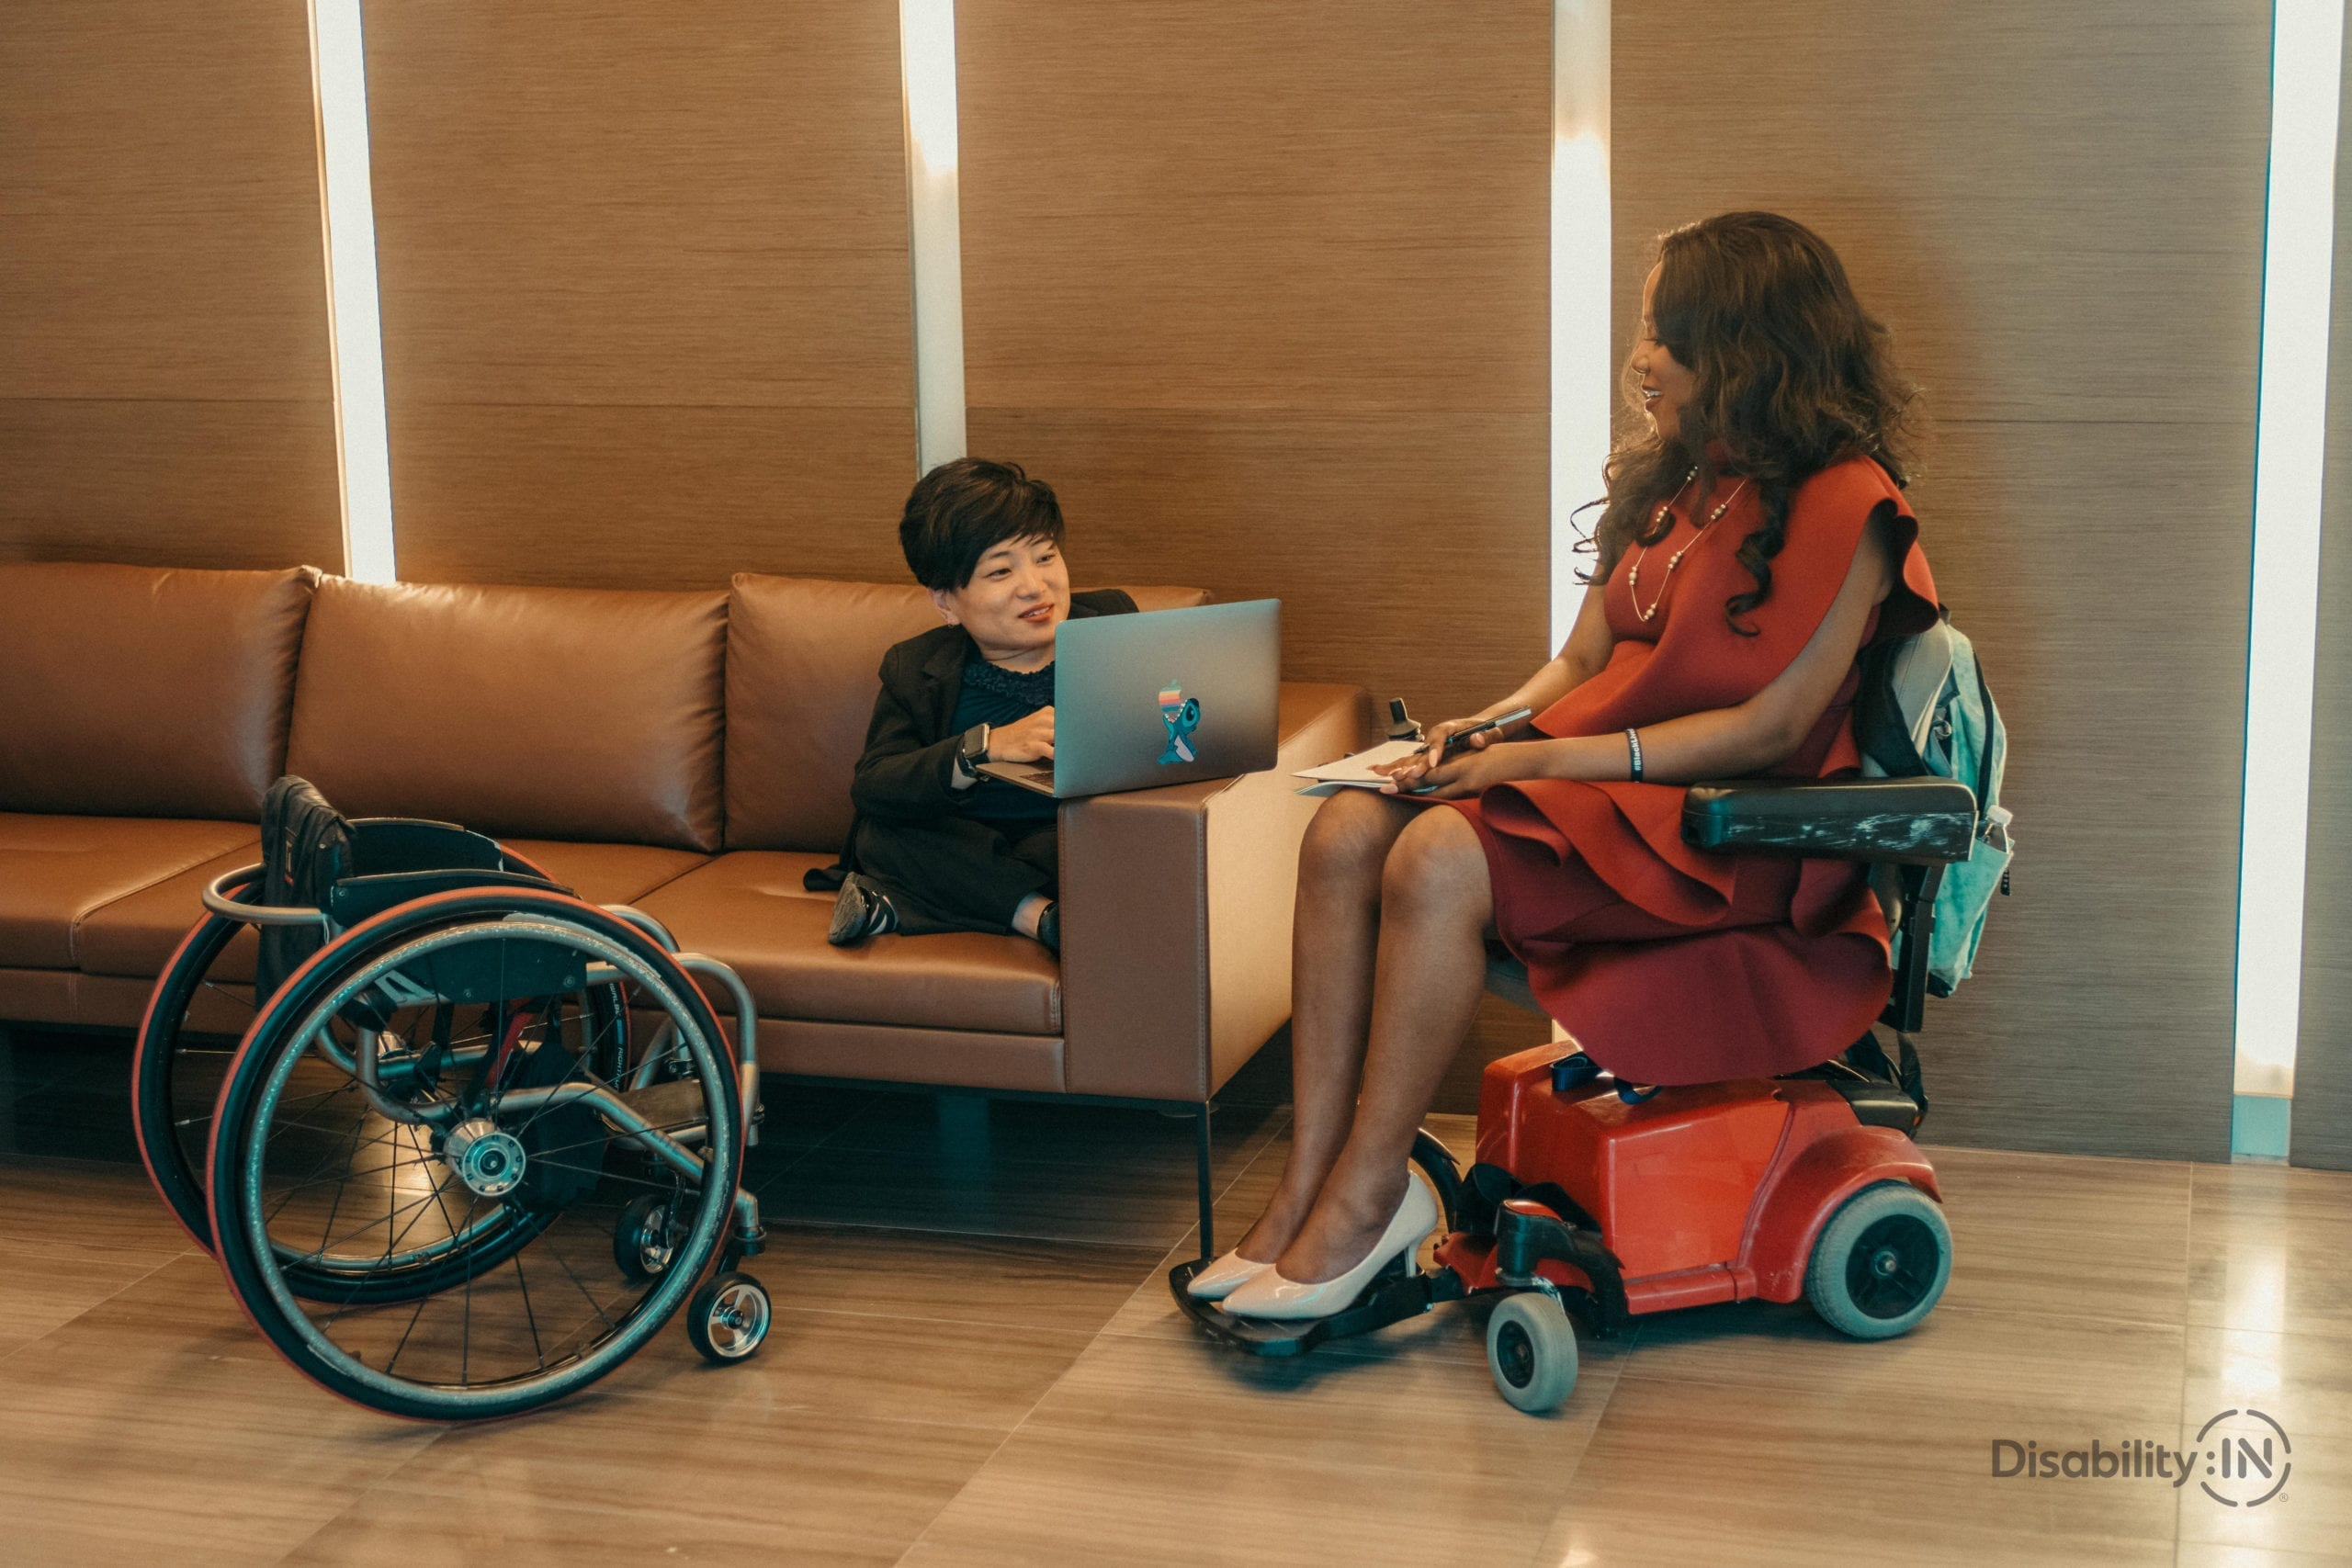 Two women in professional setting discuss work. Both women utilize a wheelchair.